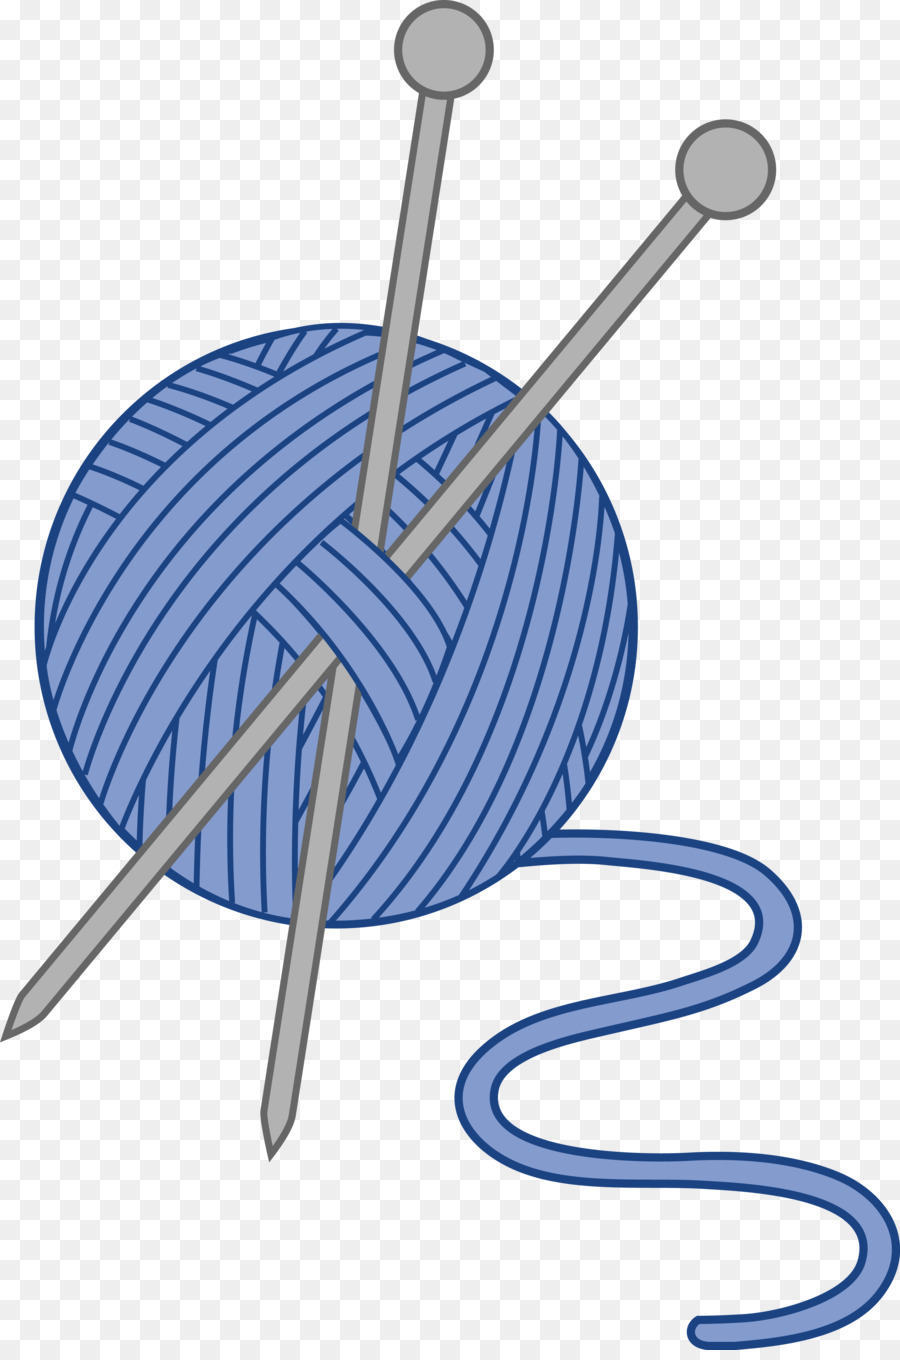 royalty free library Needles needle hand sewing. Knitting clipart.